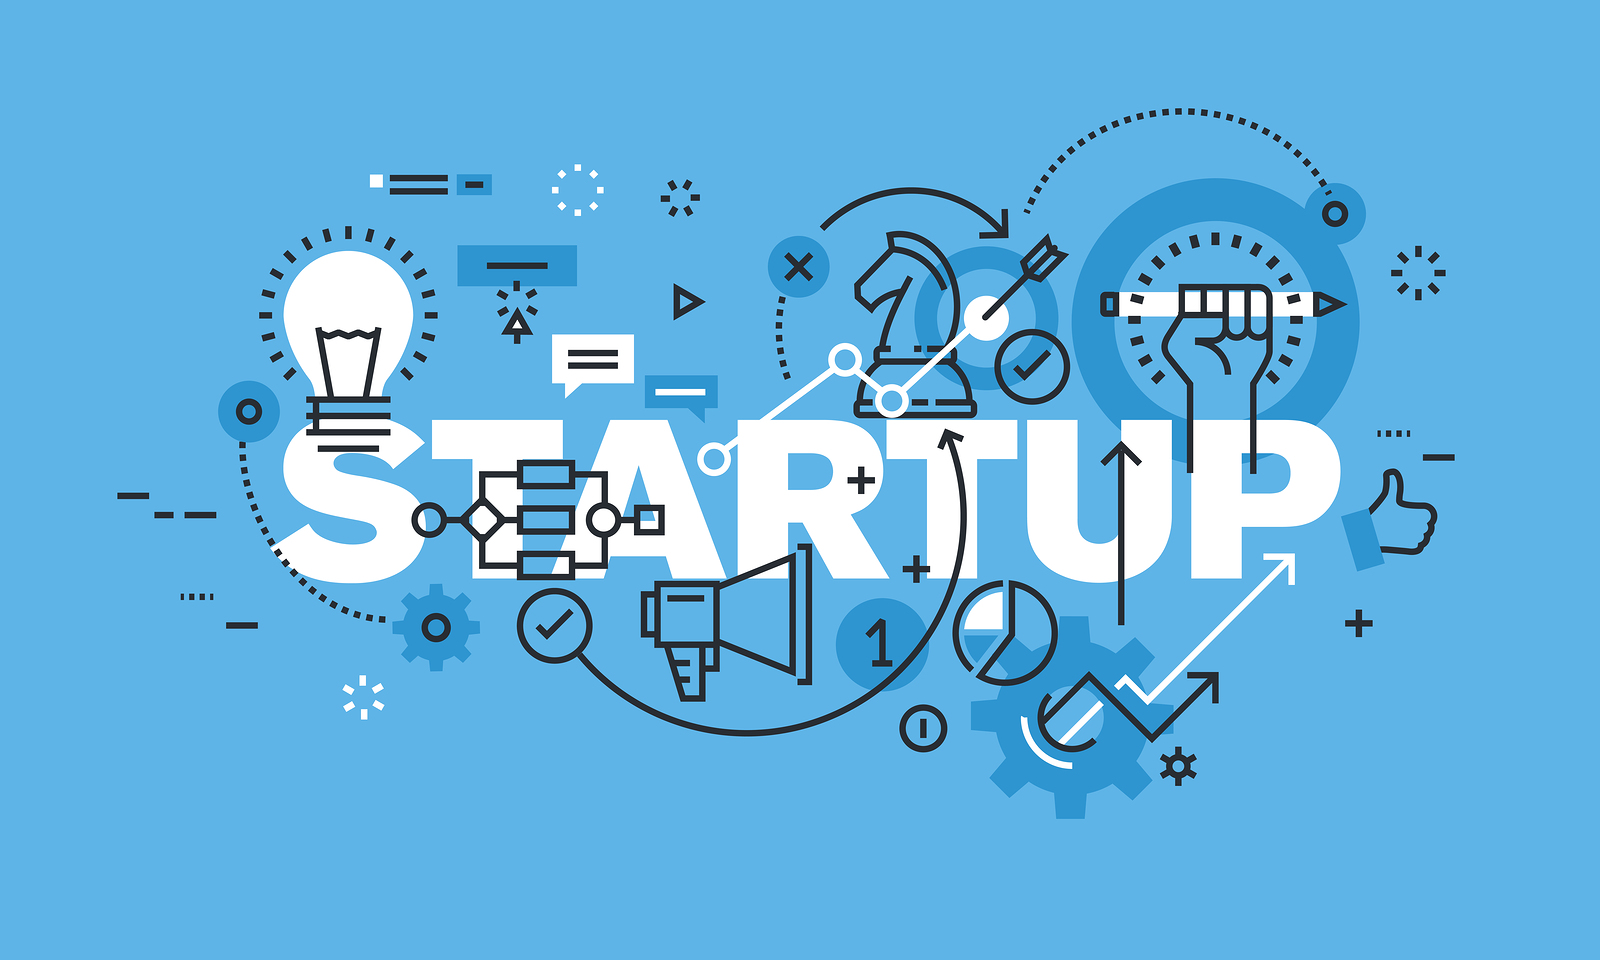 guesty startup